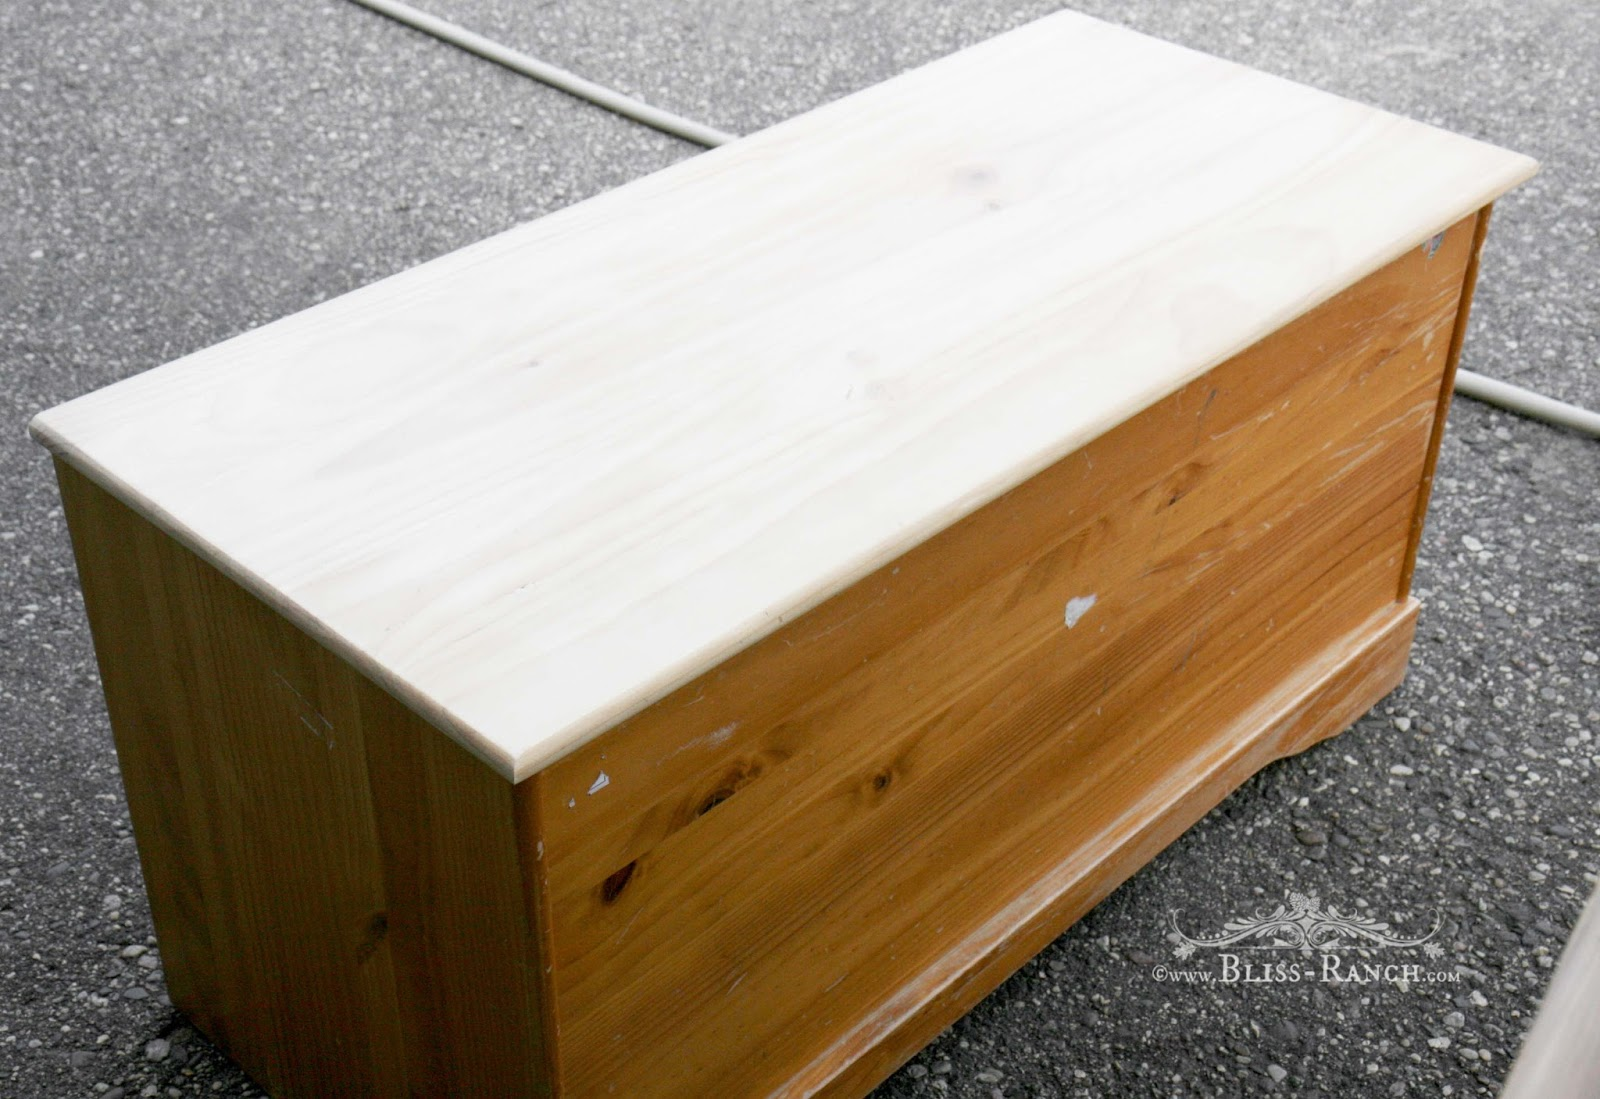 Pine Box Upcycle To Blanket Chest, Bliss-Ranch.com